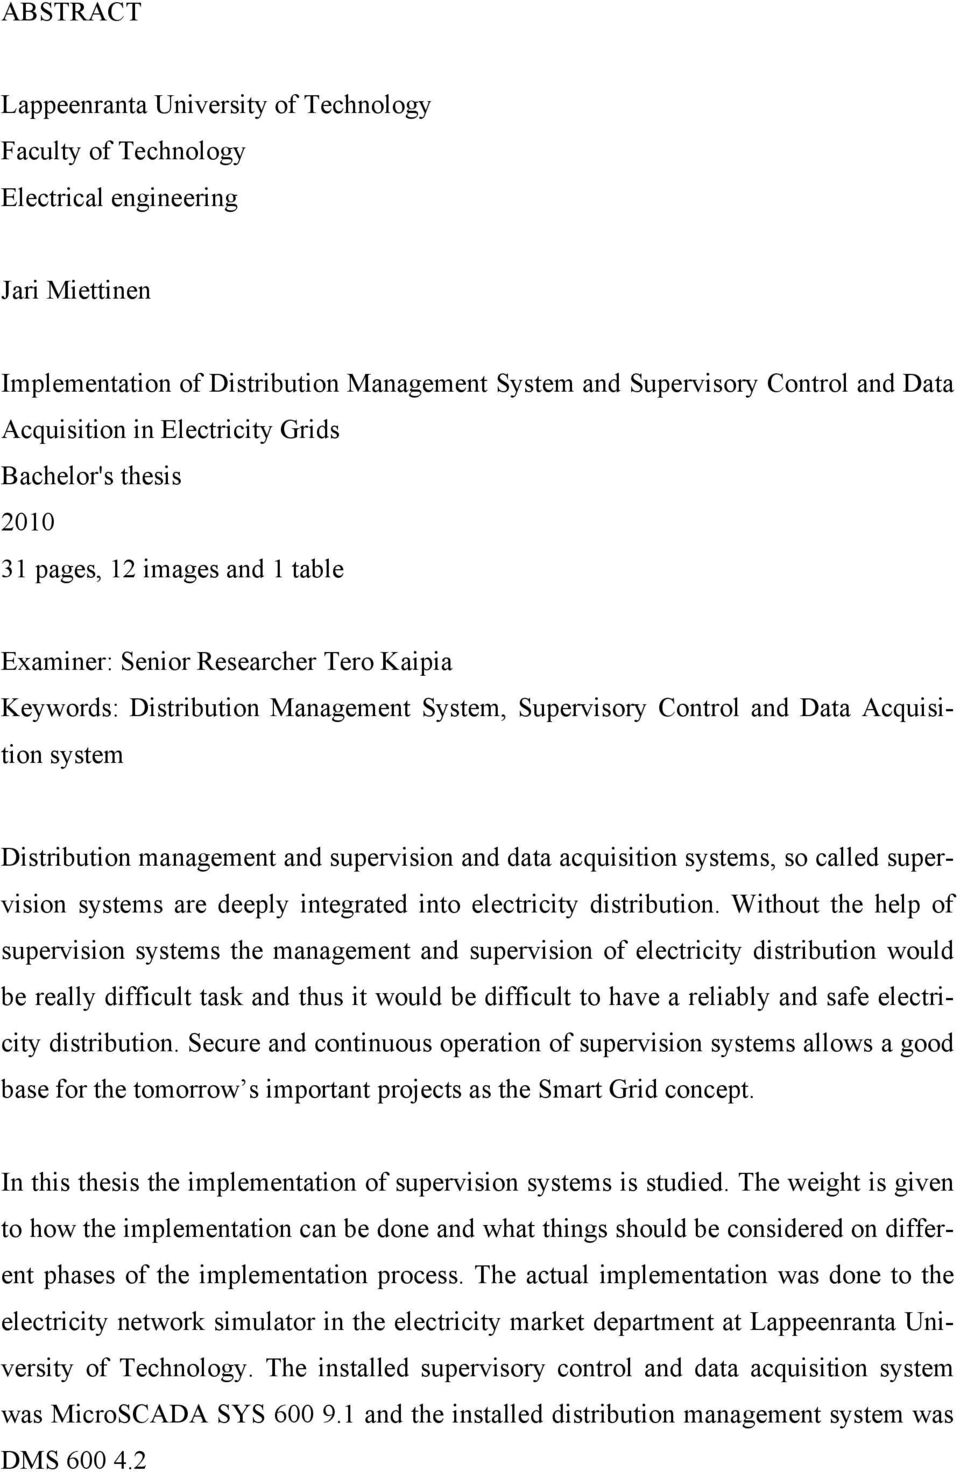 Acquisition system Distribution management and supervision and data acquisition systems, so called supervision systems are deeply integrated into electricity distribution.